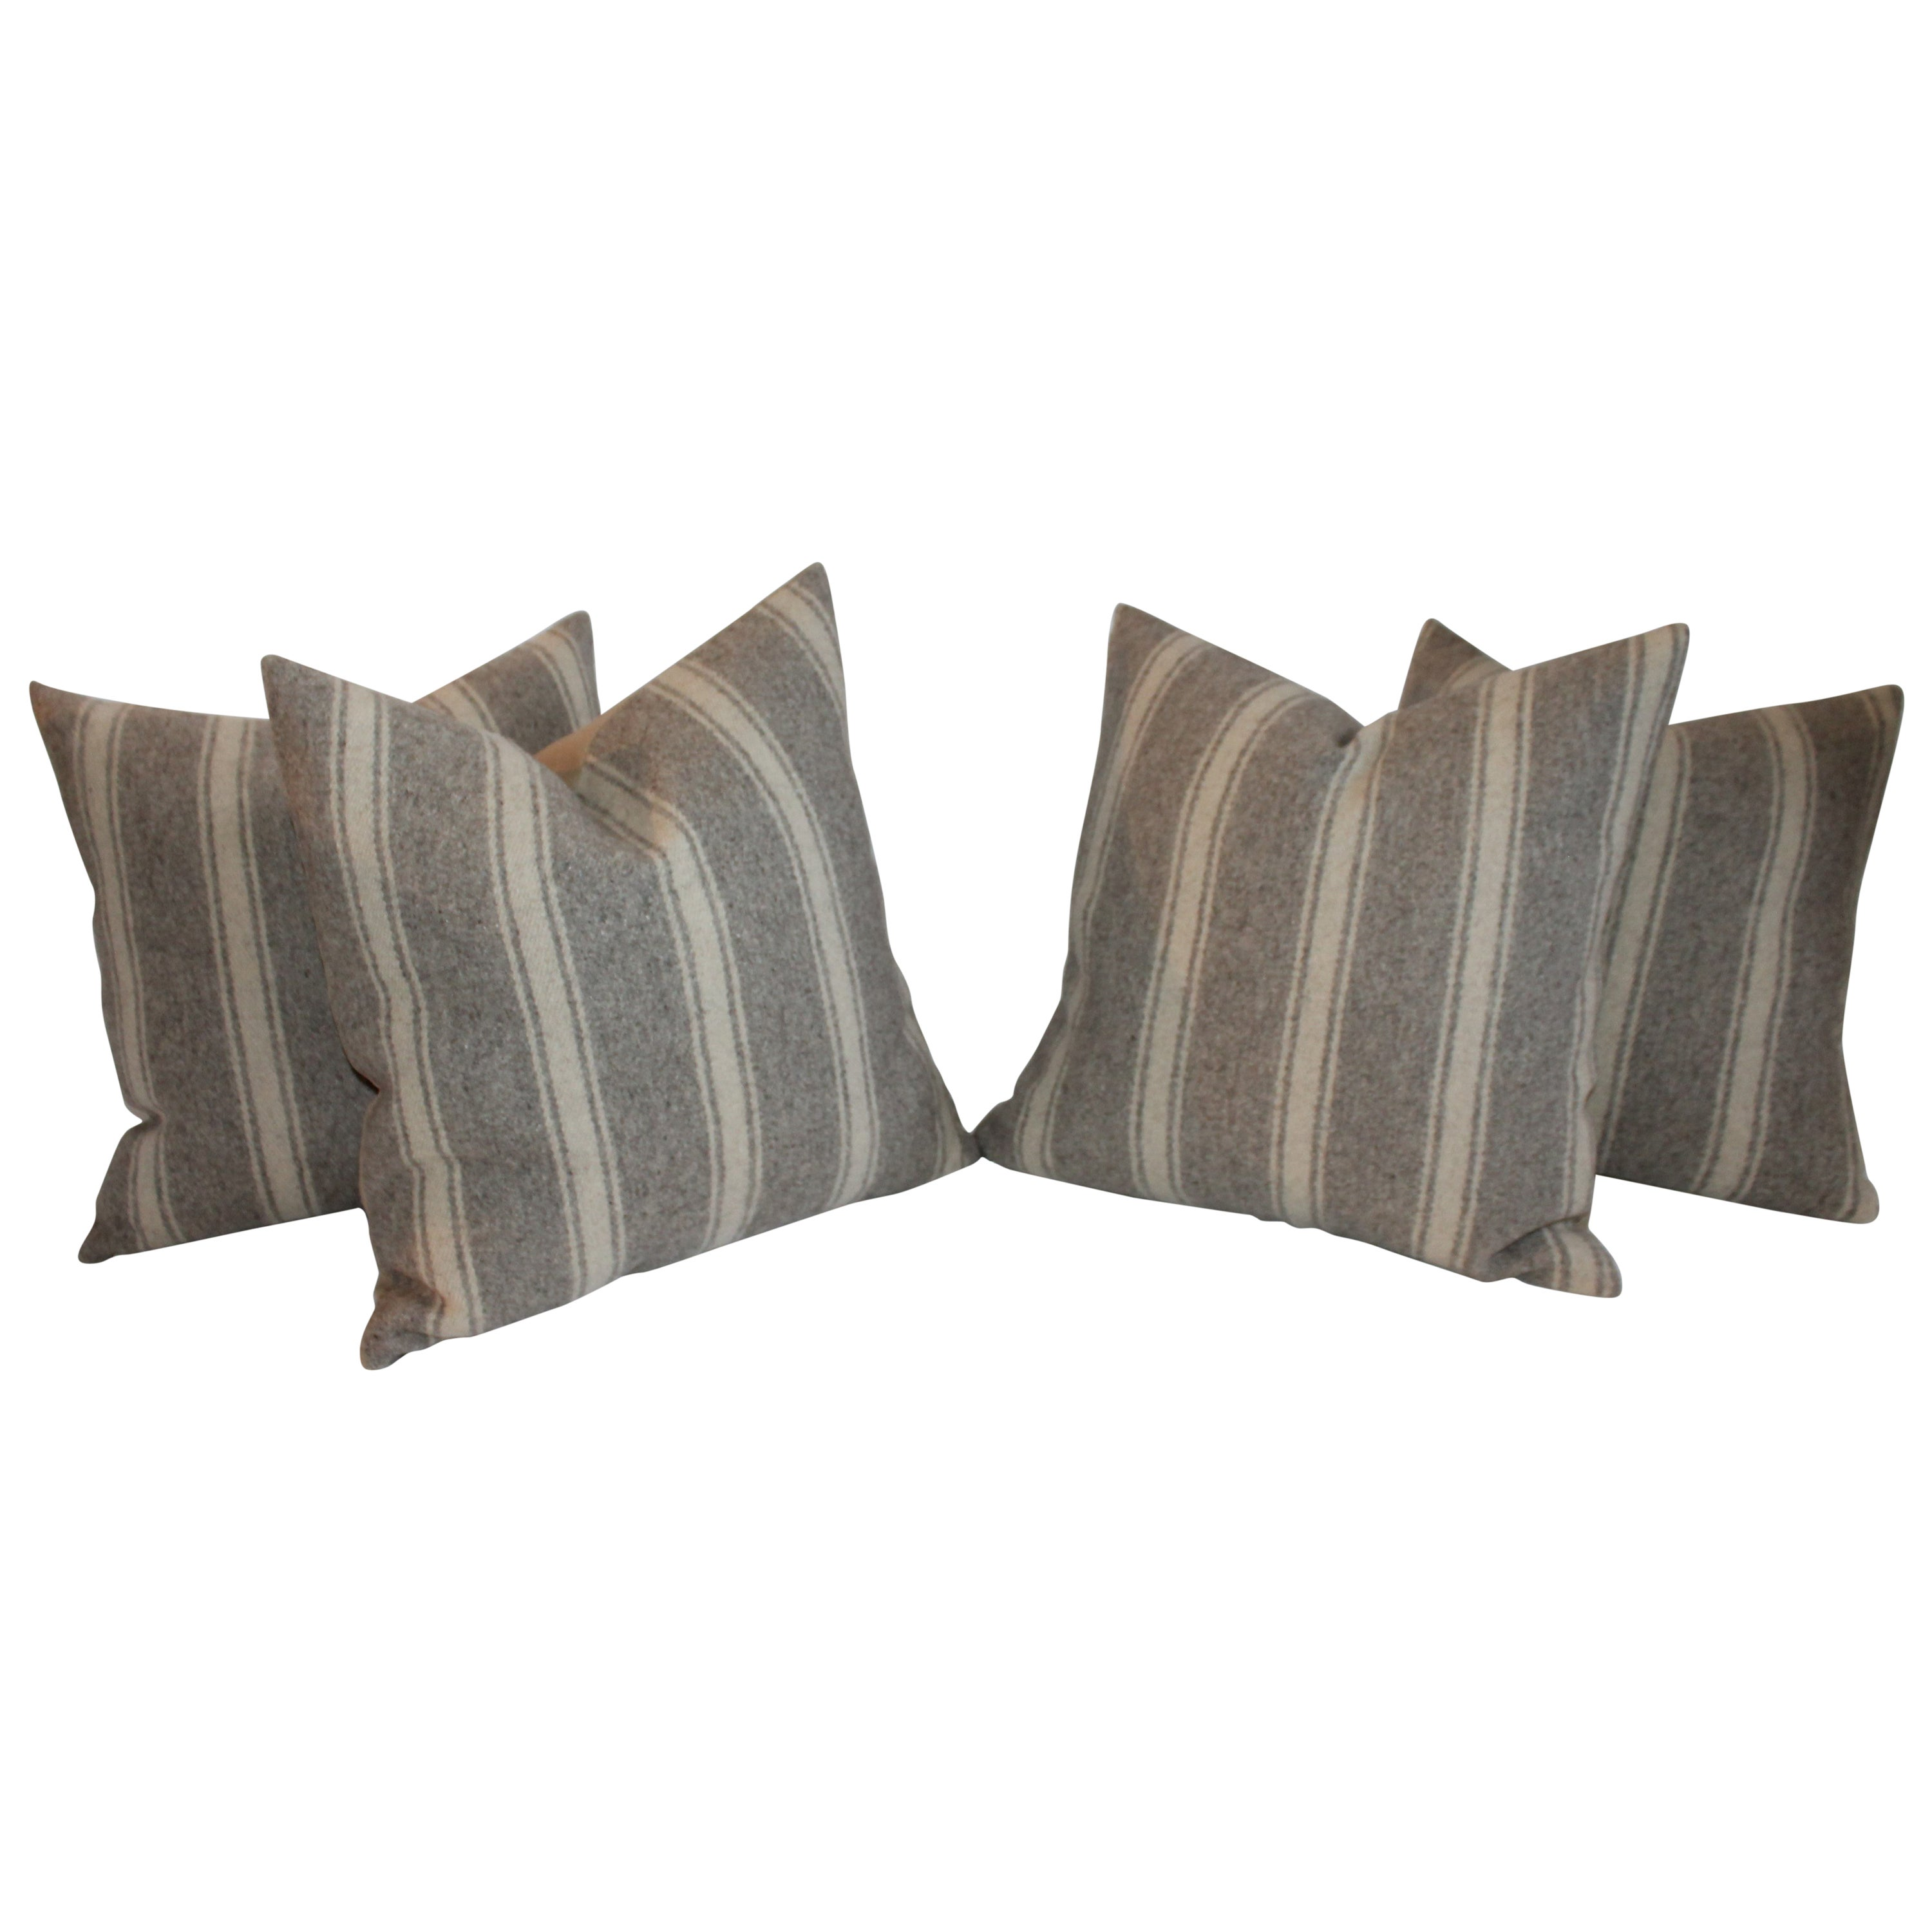 Collection of Four Saddle Blanket Weaving Pillows